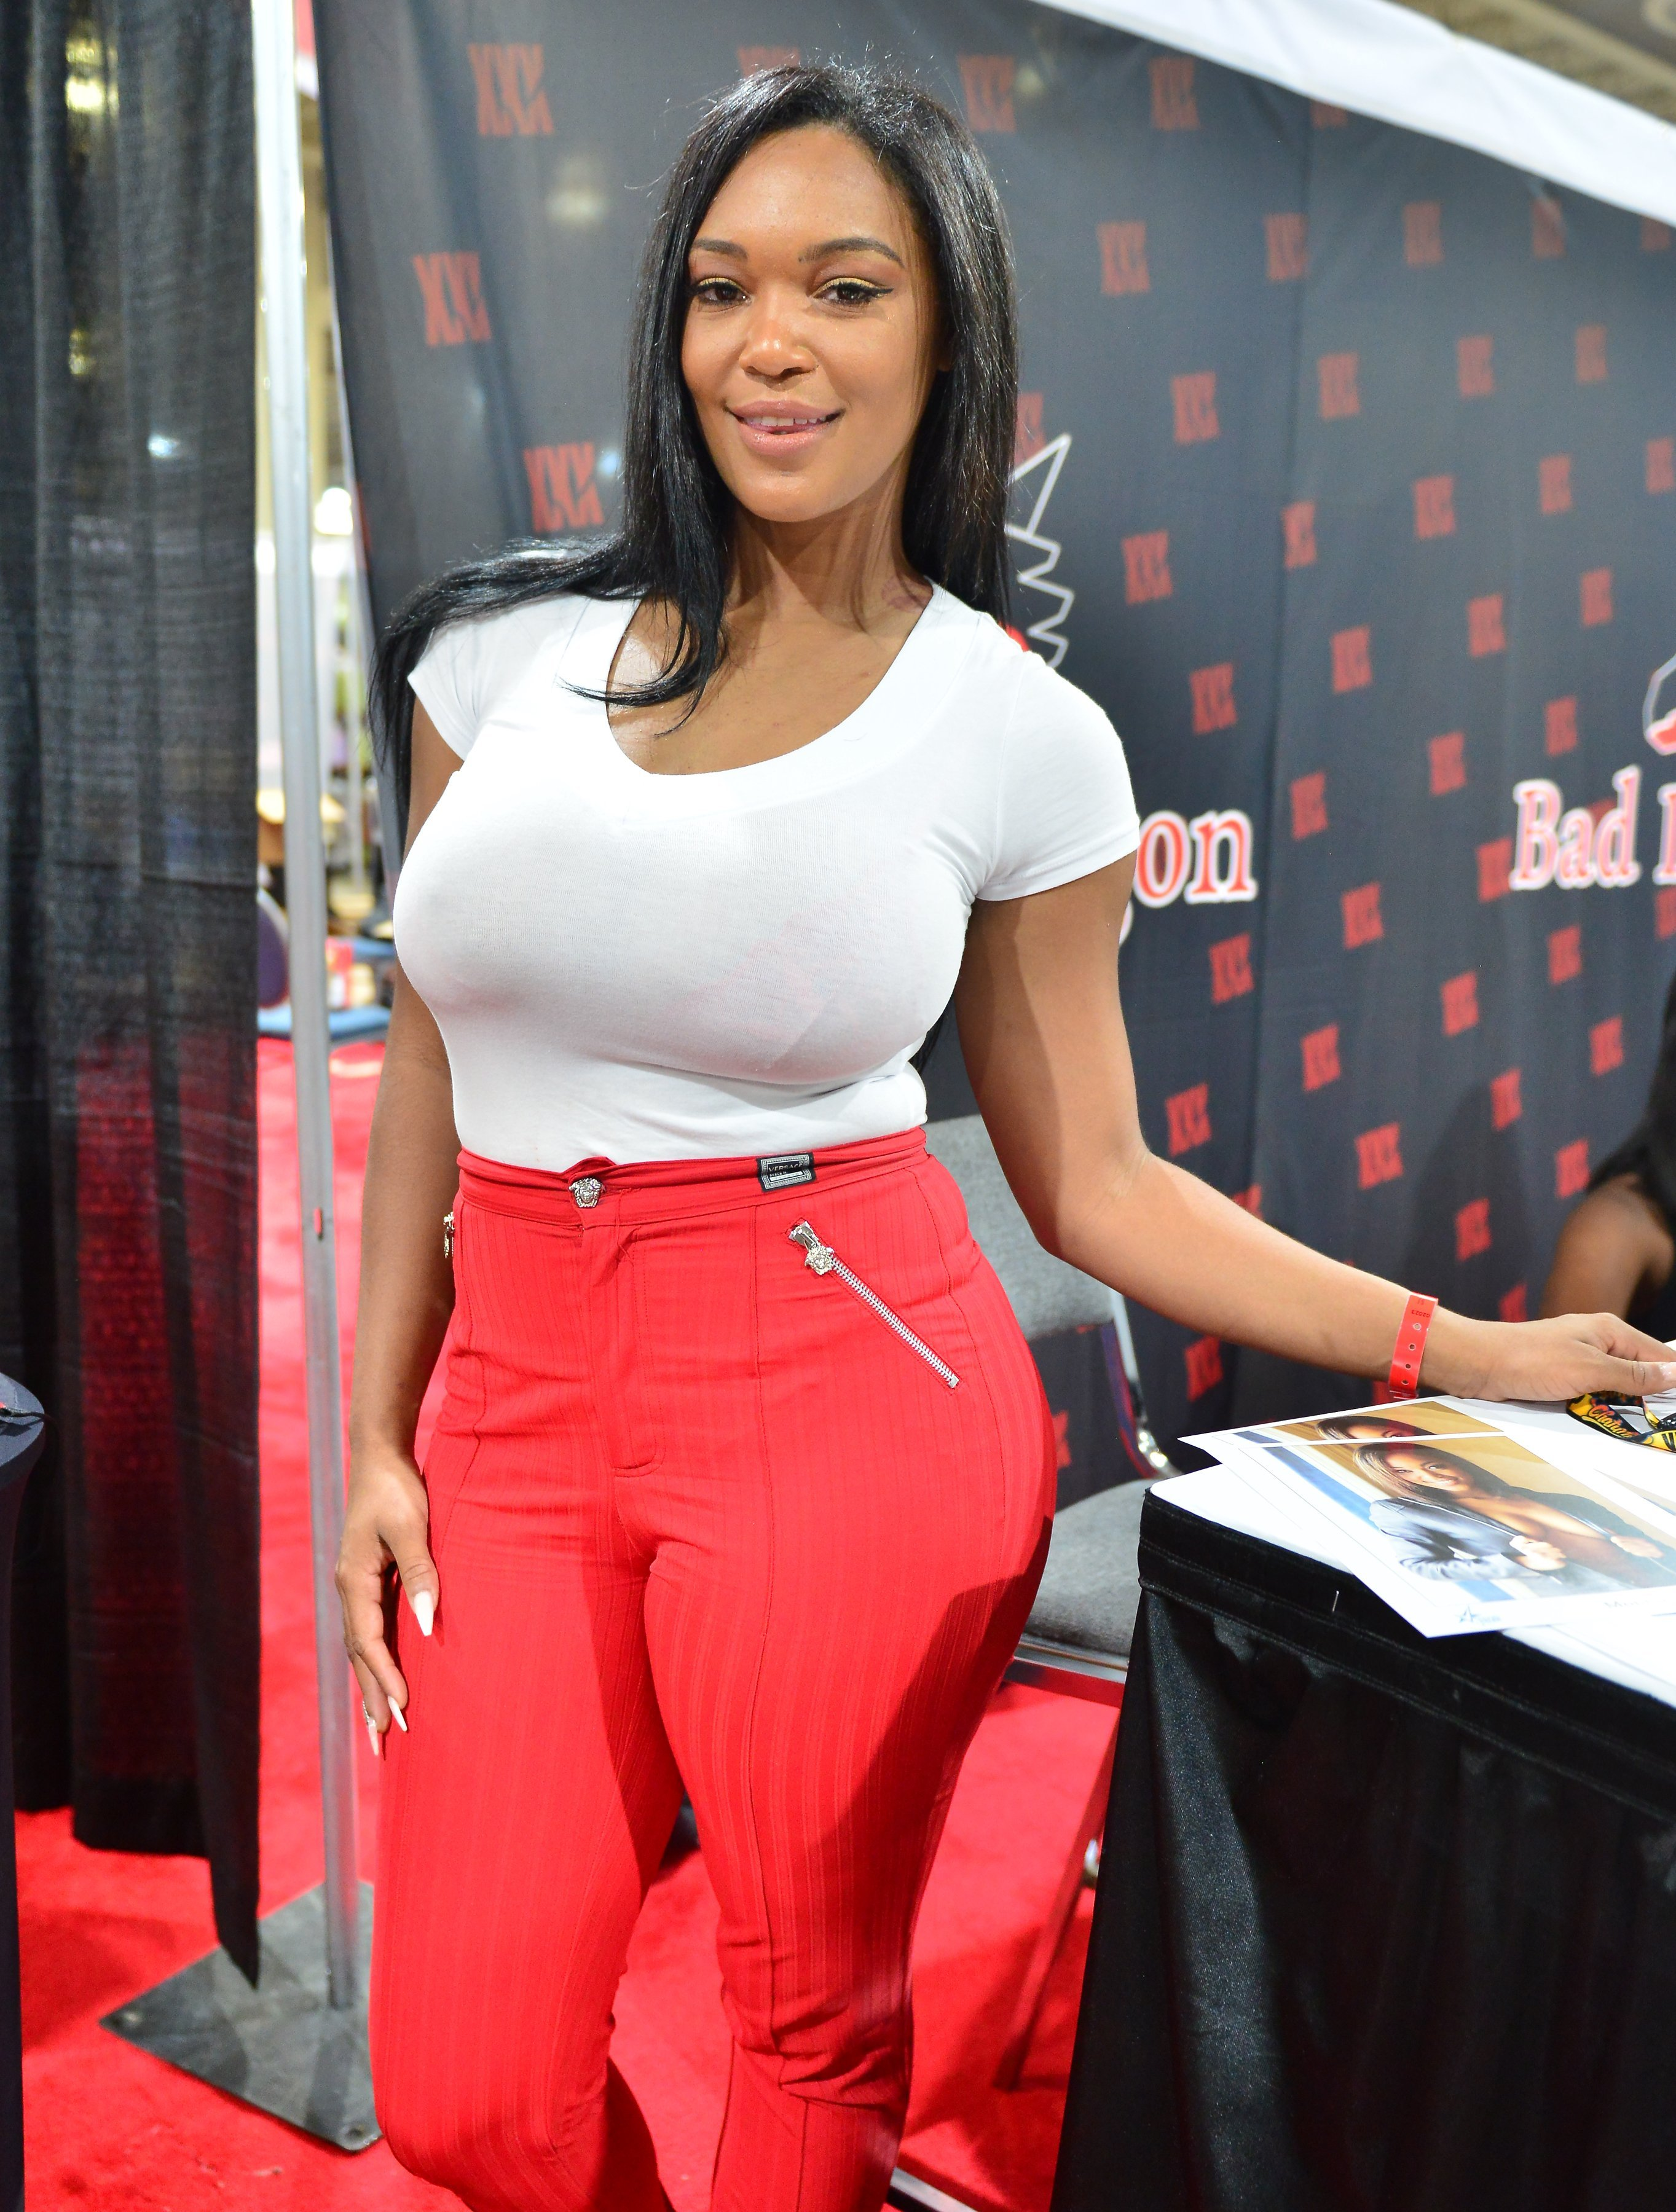 Montana Fishburne attends the EXXXOTICA Expo 2018 on July 21, 2018 in Miami, Florida | Photo: Getty Images